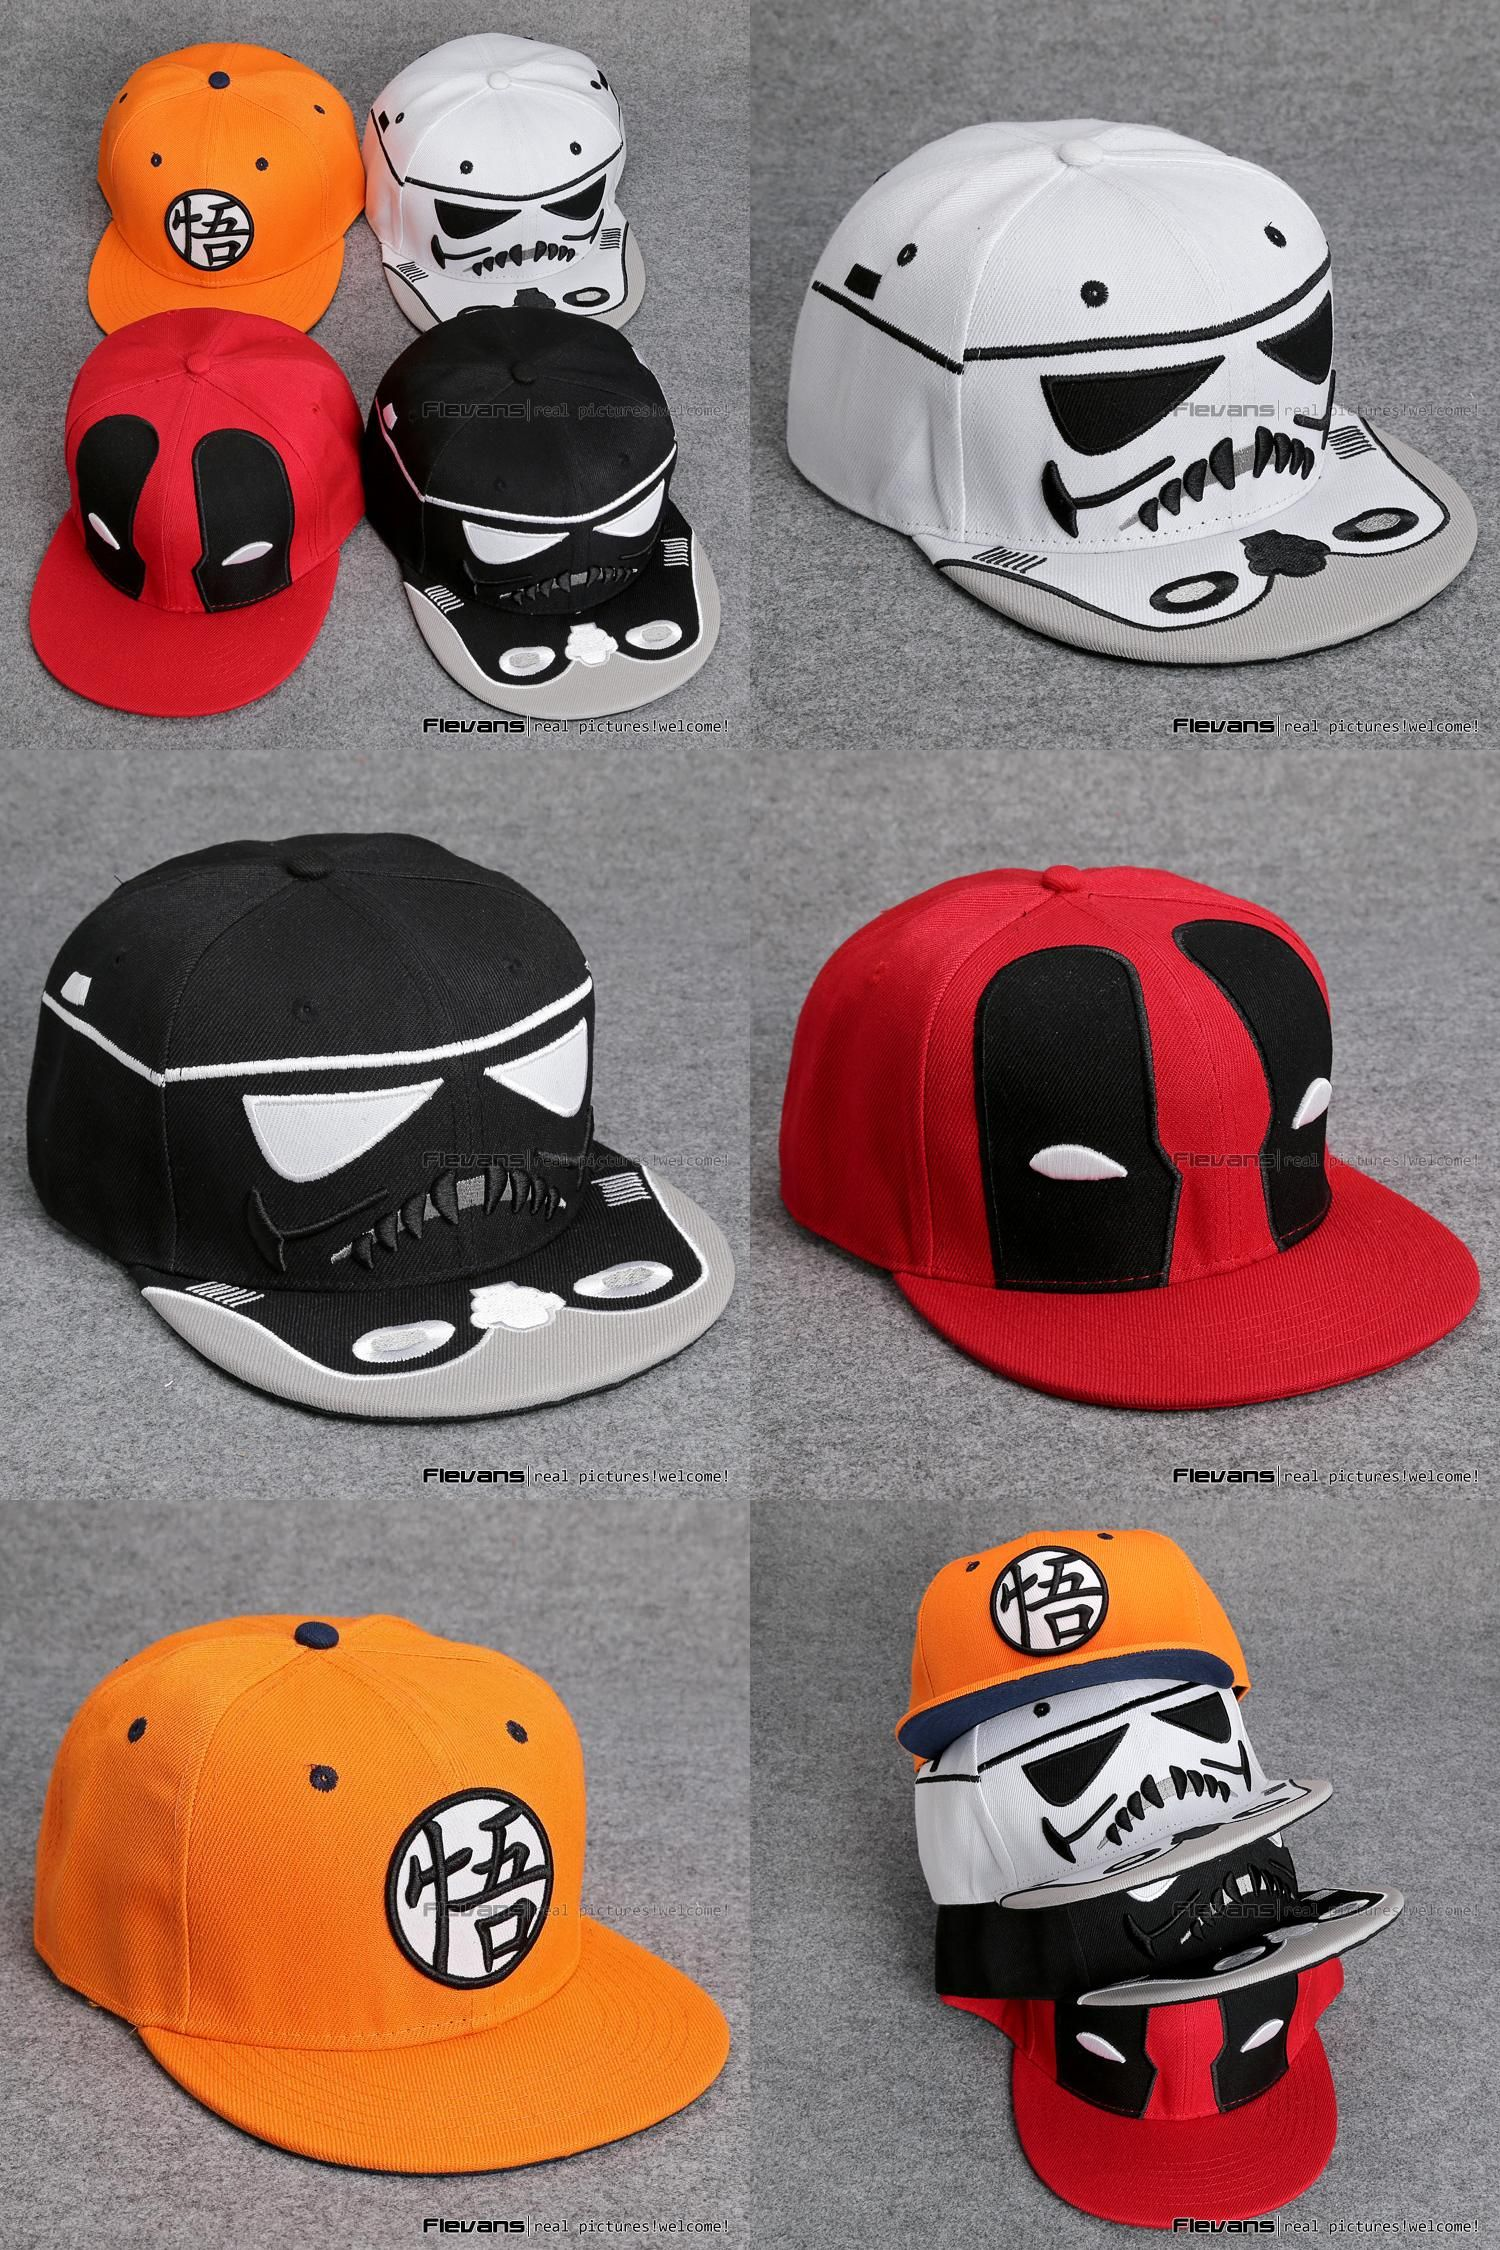 premium selection 8f827 c6bef new zealand italy visit to buy star wars deadpool dragon ball snapback caps  cool hat adult